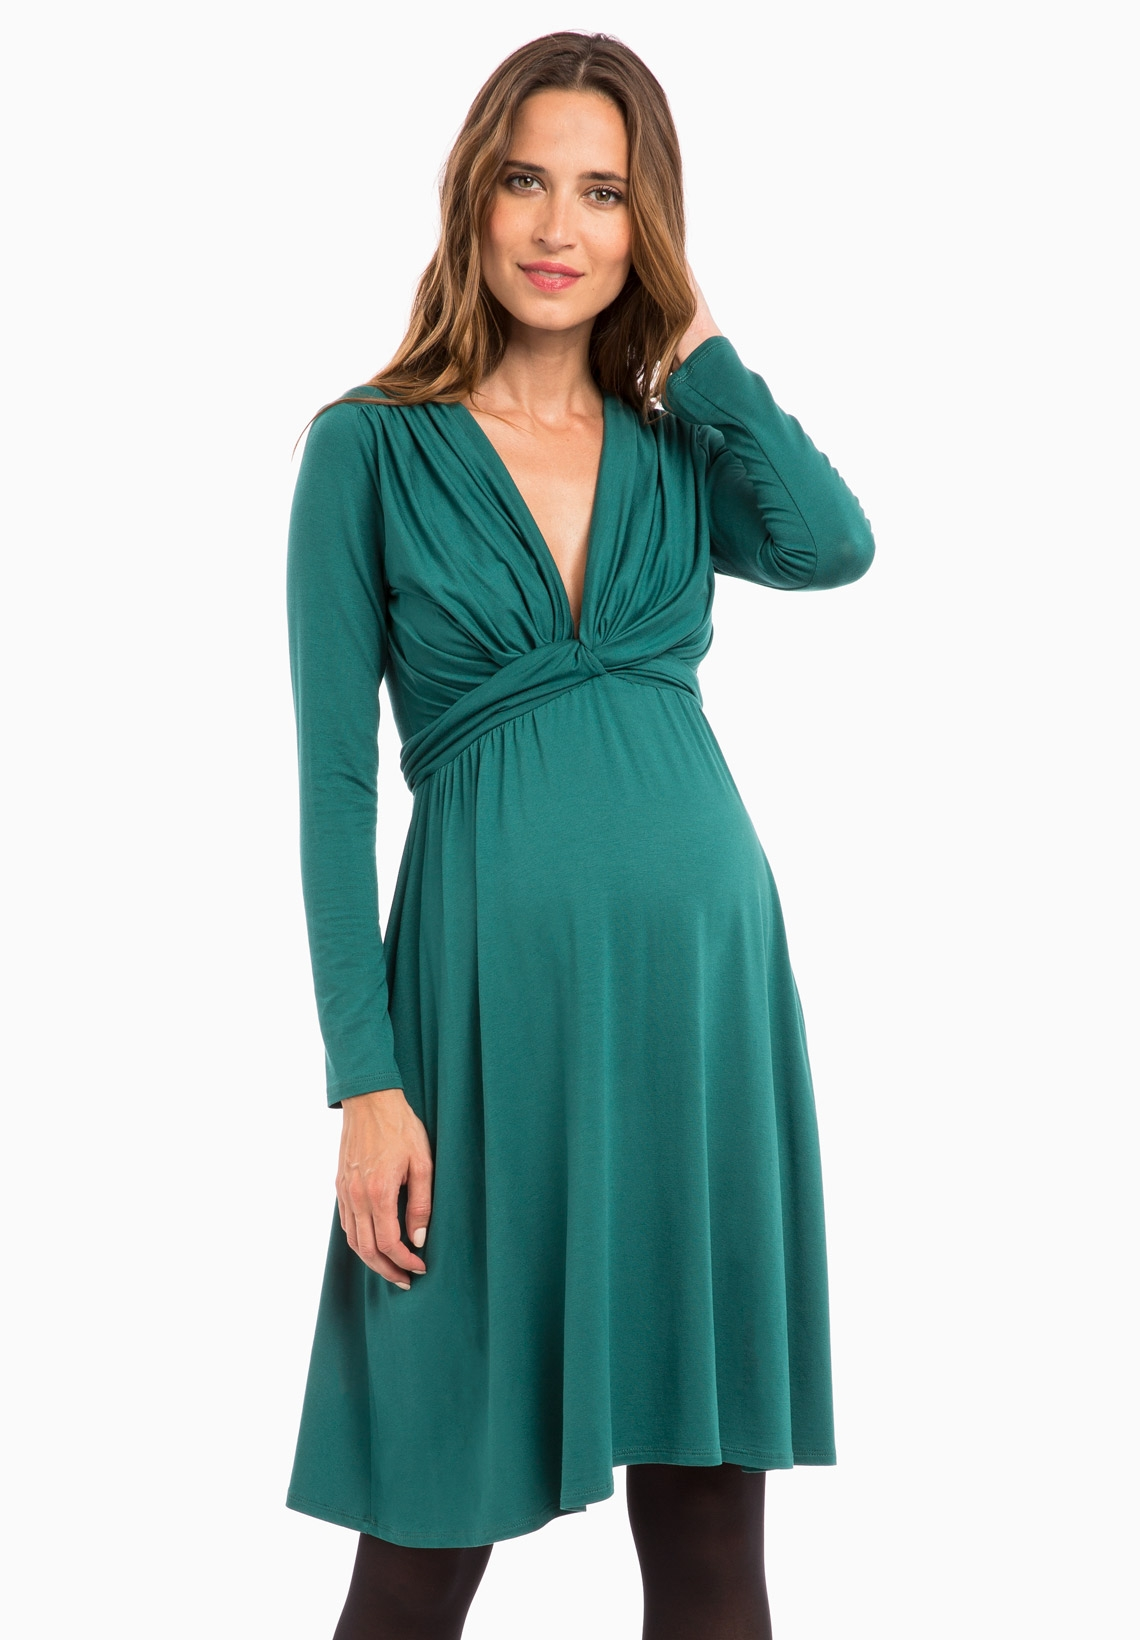 Maternity dress - AMANDA LS